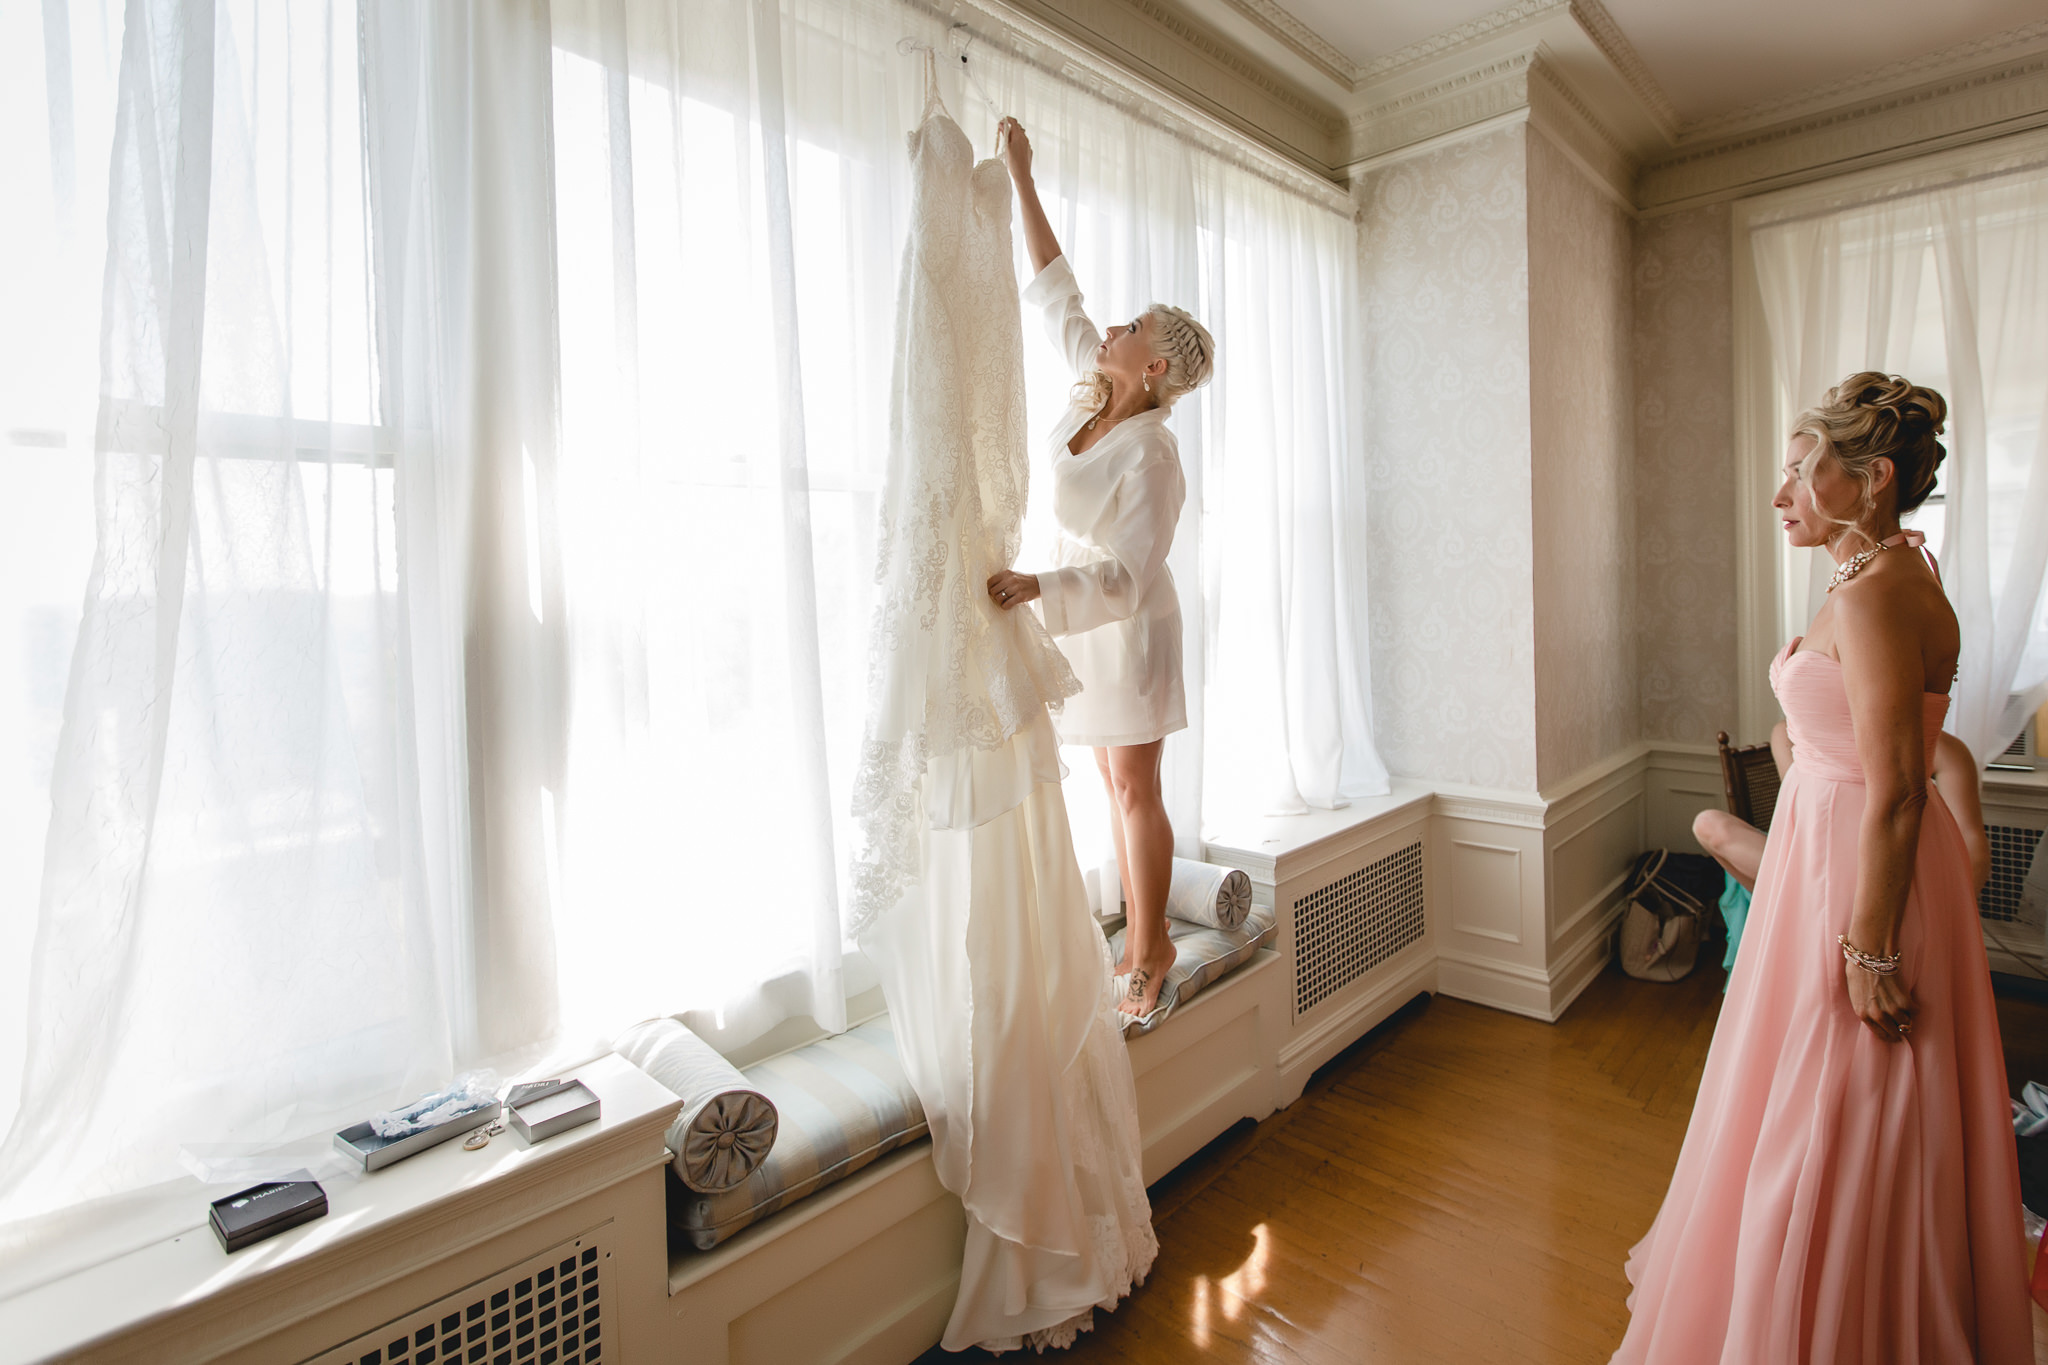 Bride taking her lace wedding dress off of the hanger